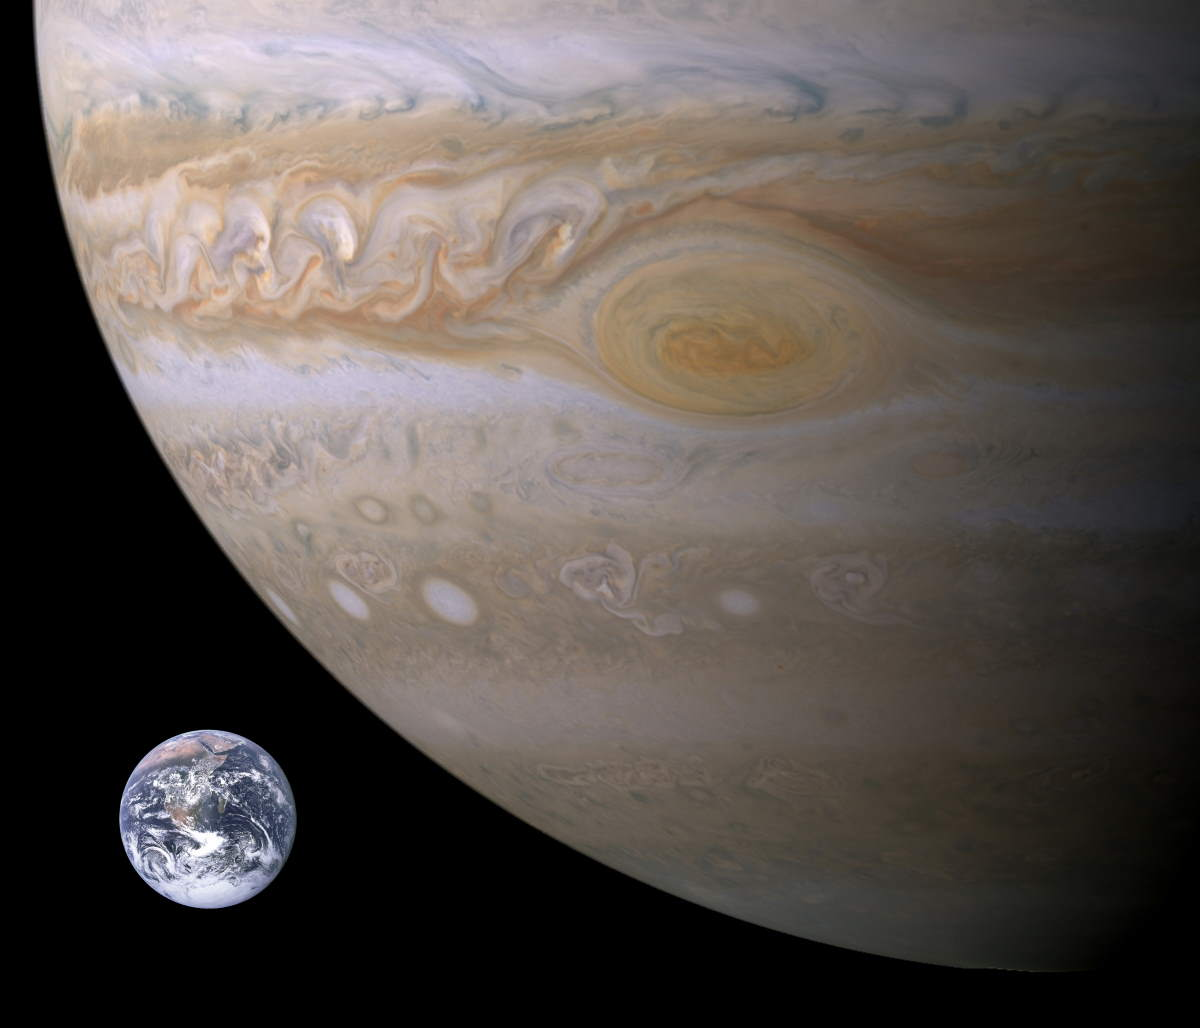 Jupiter's Great Red Spot is the largest hurricane in Solar System